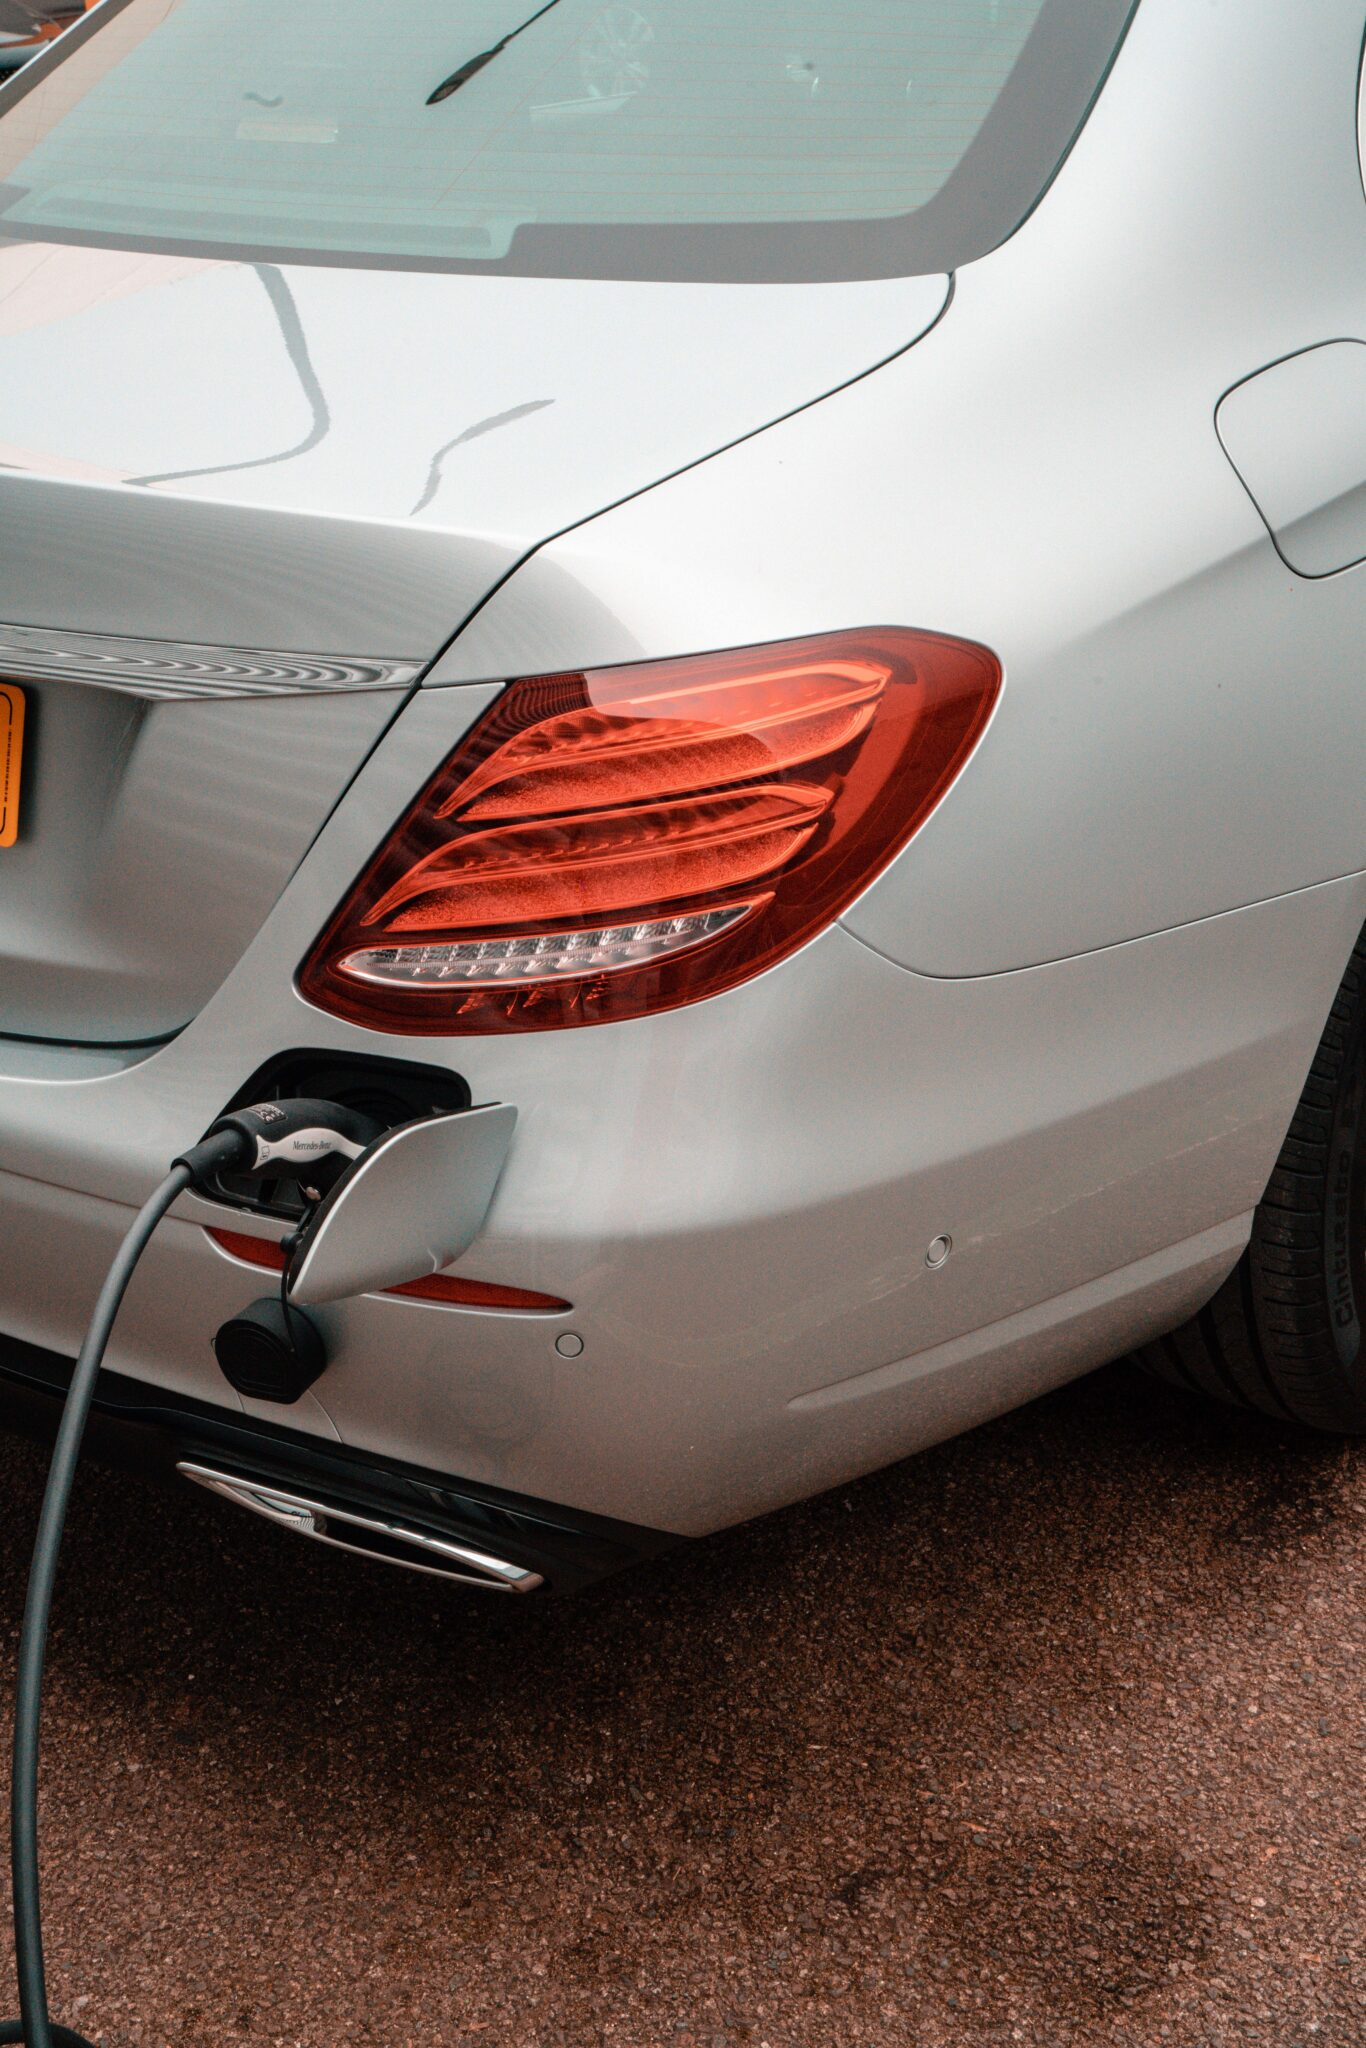 The E 300 de can easily be plugged in